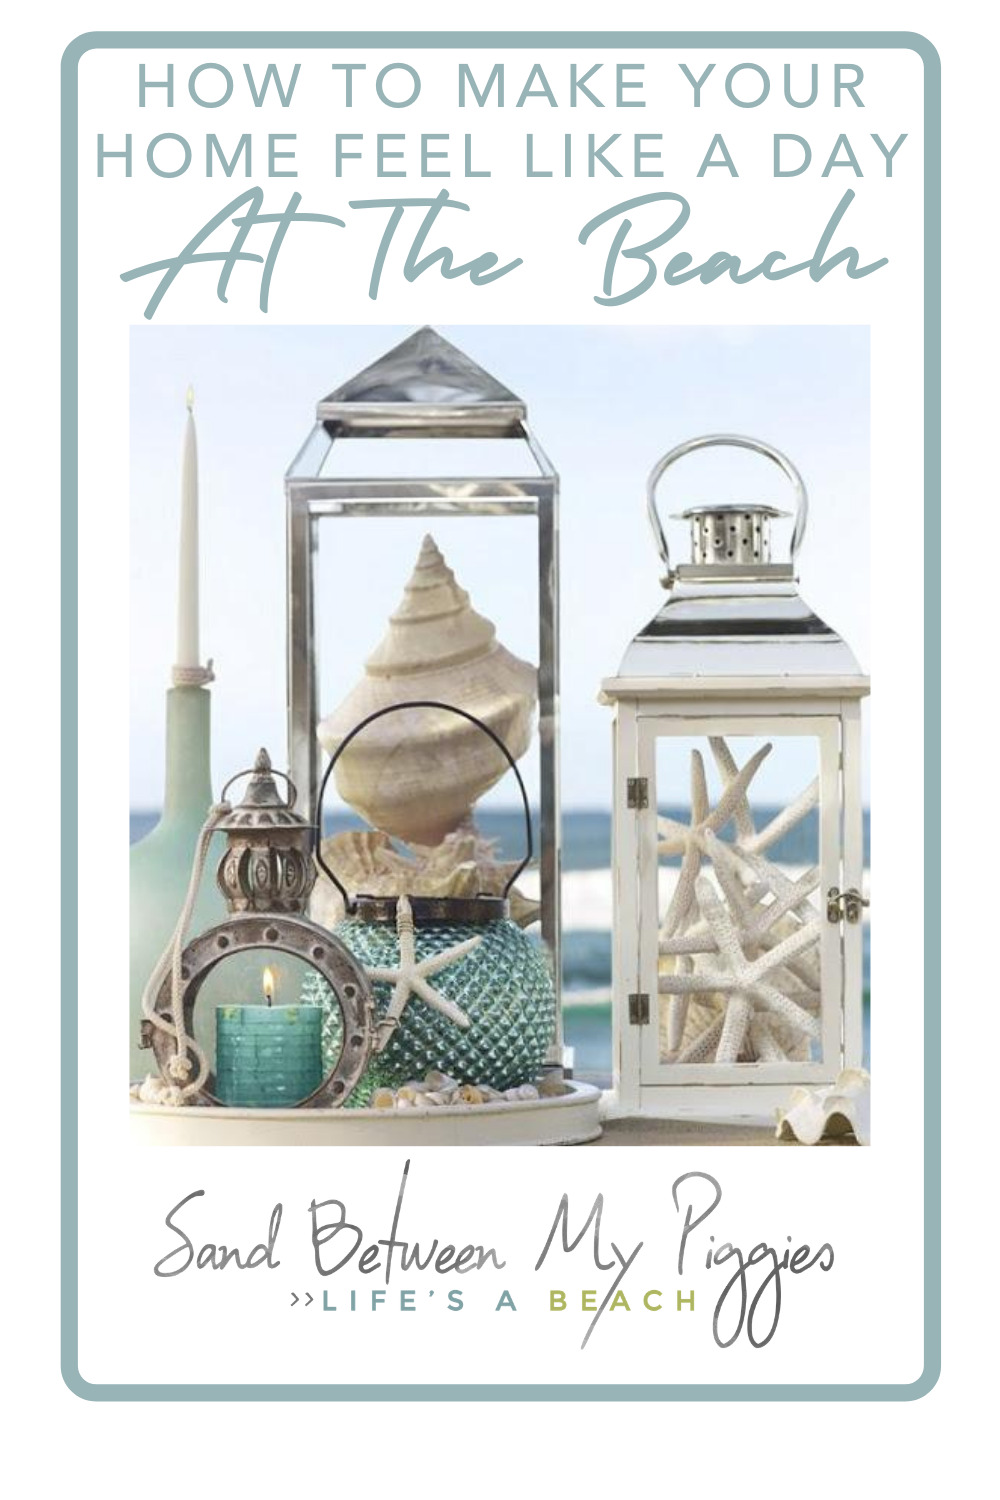 Sandbetweenmypiggies.com will bring relaxed, beachy vibes into your everyday life. Find out how you can kick back in everything you do. Bring that same energy into your home decor with these ideas.